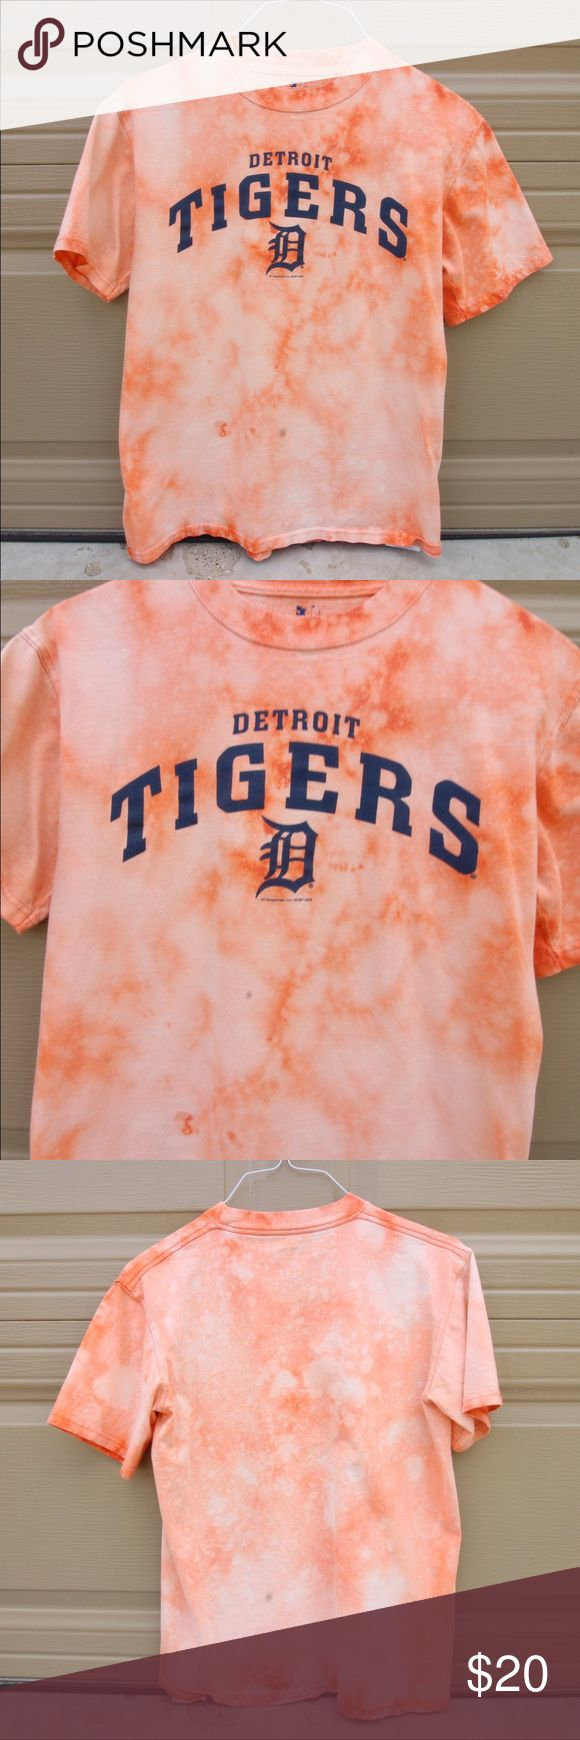 Vintage Bleach Dyed DETROIT TIGERS shirt DETROIT TIGERS t shirt bleach dyed by me. Men's size medium. Listed in the women's because loose vintage shirts are popular! NOTE** THIS ITEM IS NOT ADIDAS. I JUST PUT THAT FOR THE LISTING. adidas Tops Tees - Short Sleeve